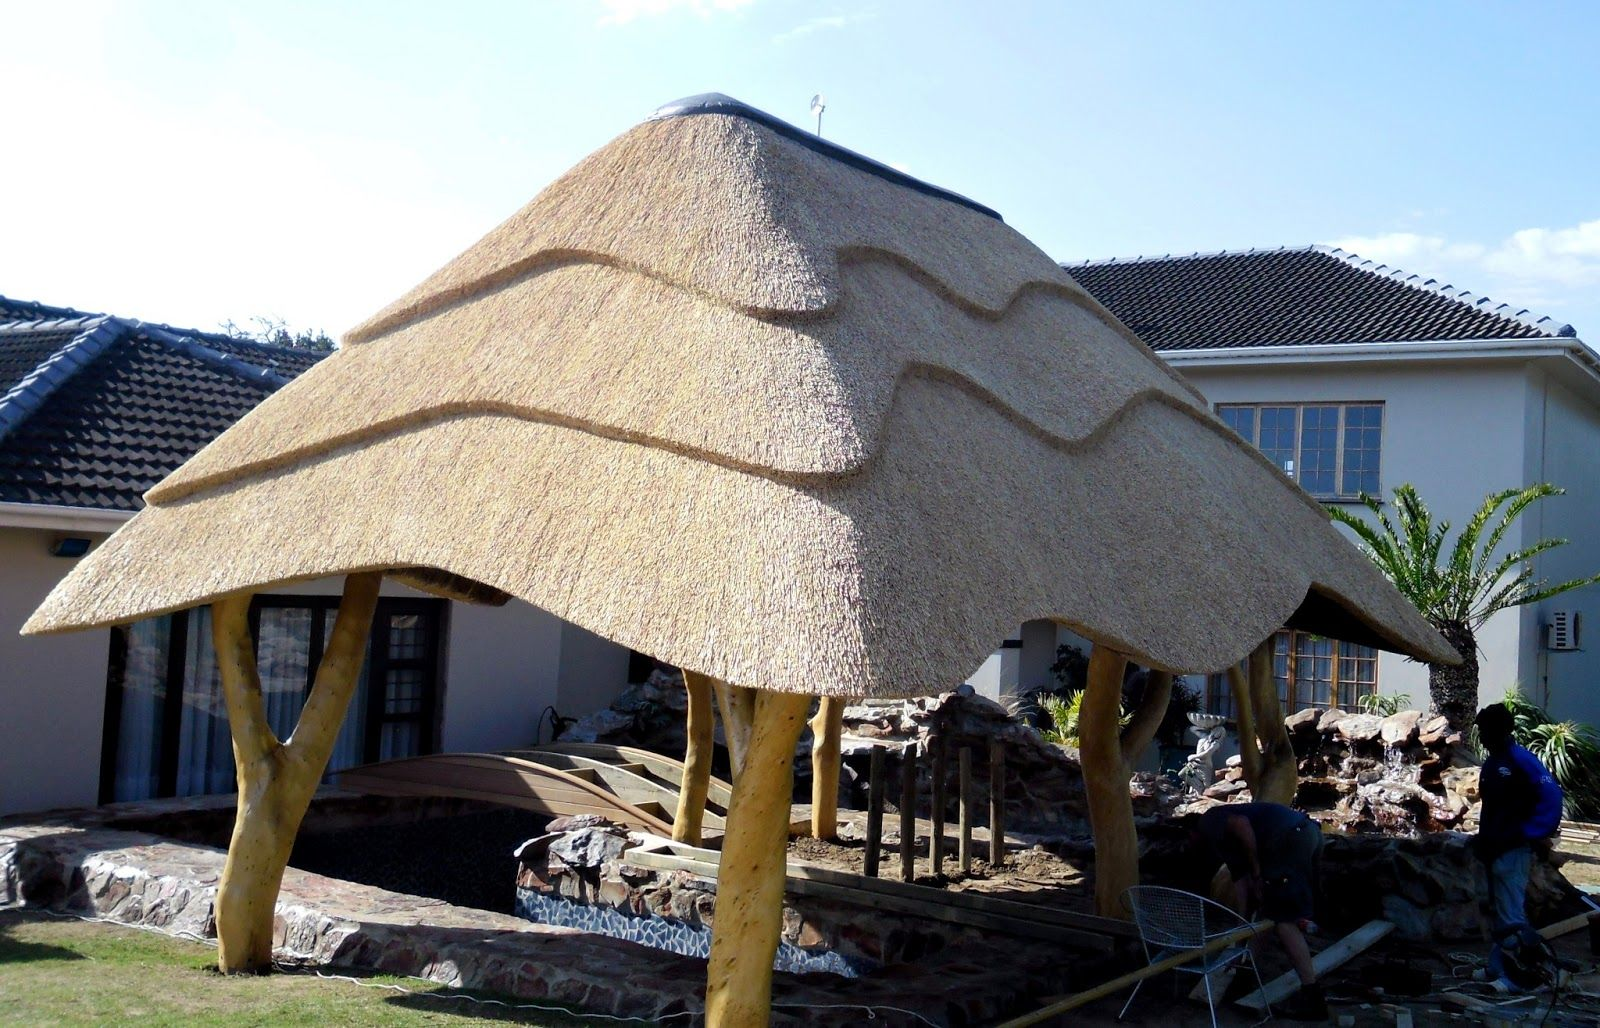 Thatch of the day 2 interesting thatch lapa designs love the thatch and supports